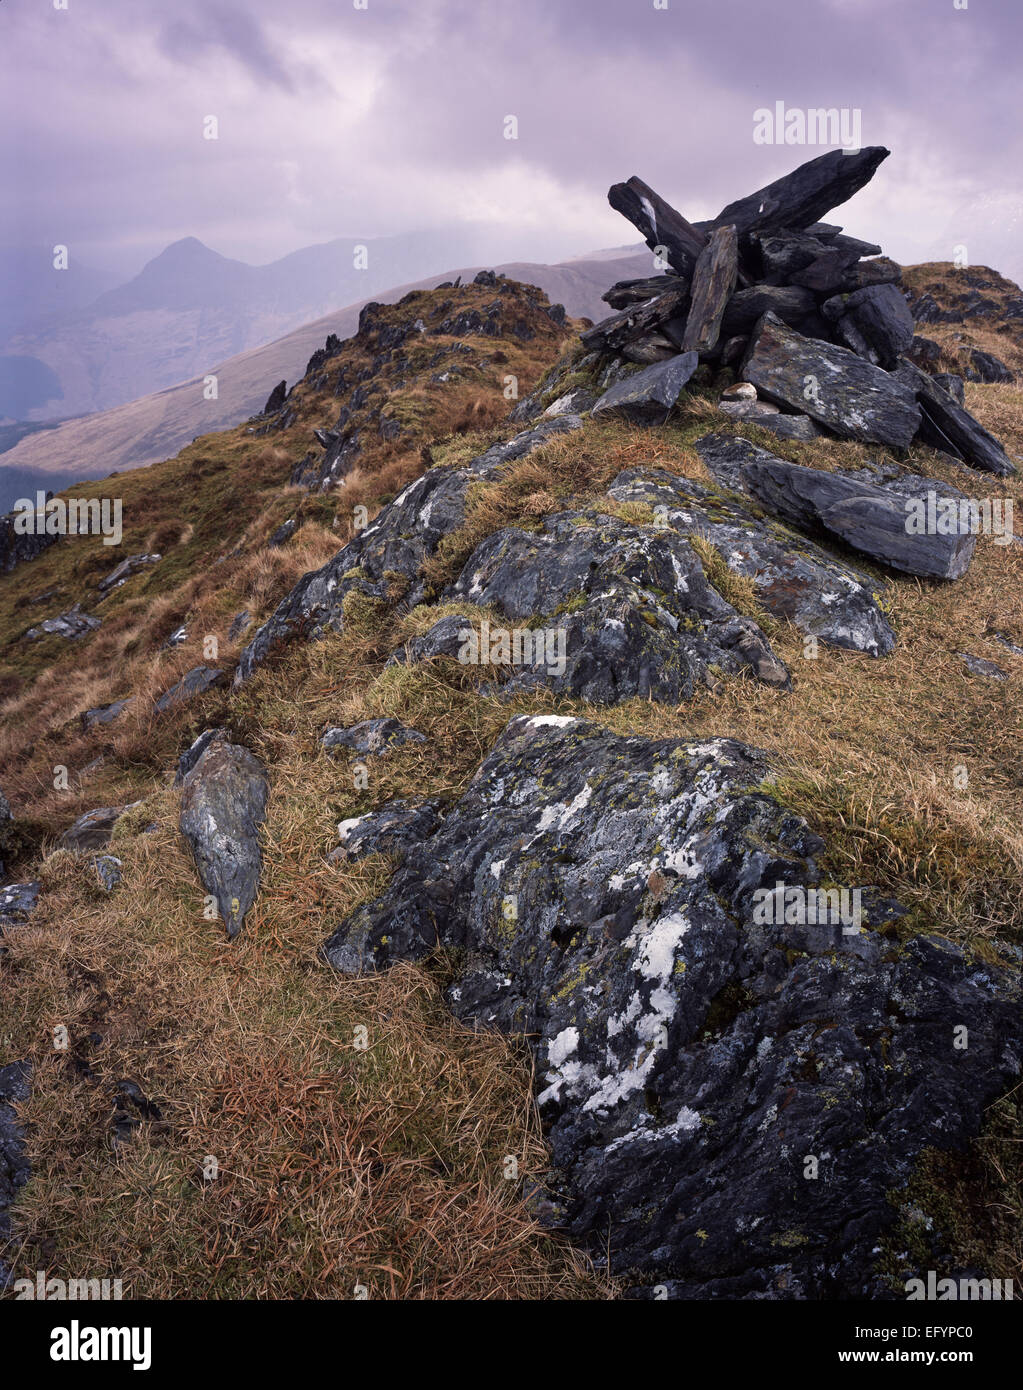 Sgurr na Ciche, The Pap of Glencoe, viewed from Sgurr a'Choise above Glen Creran, Argyll, Scotland - Stock Image